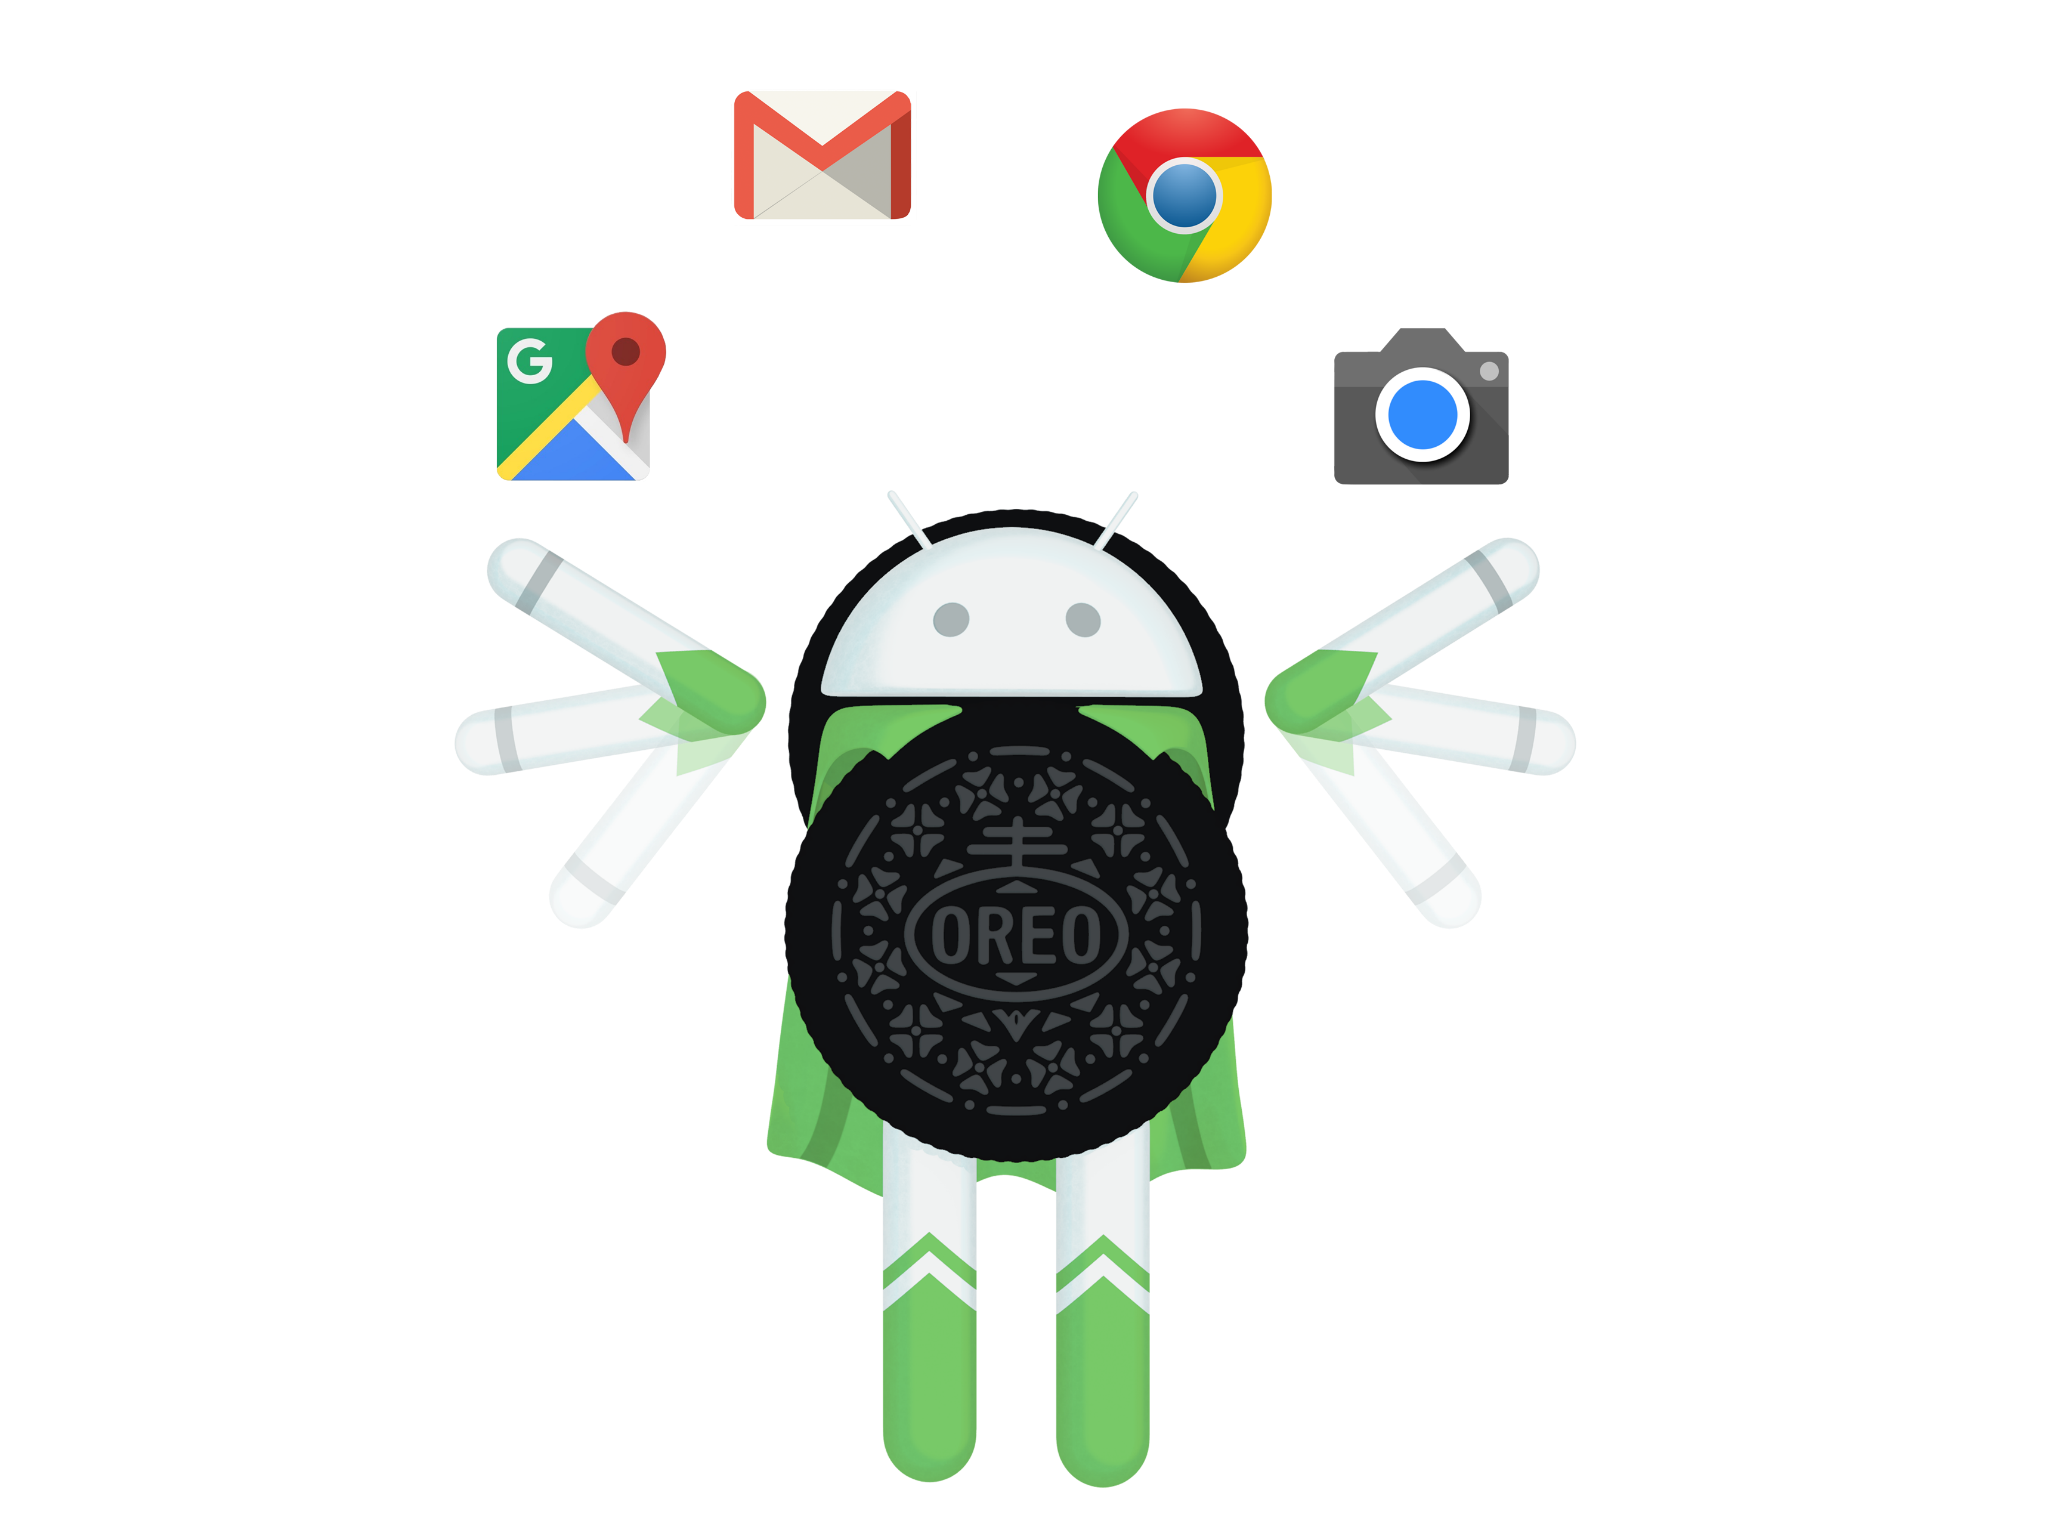 Android everything you need. Oreo clipart advertisement